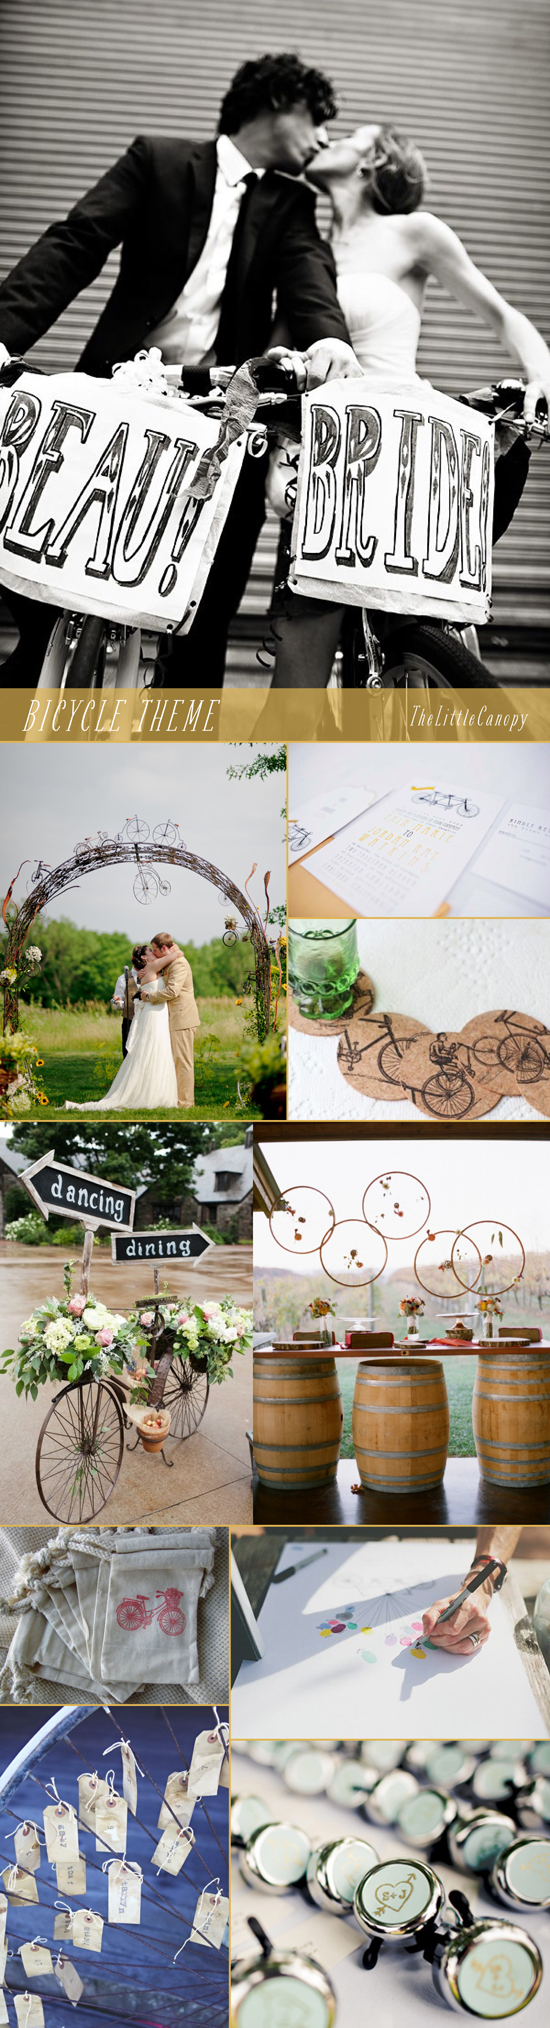 This week's inspiration board : bicycle theme! Cute ideas to incorporate the intricate designs of the bicycle to create a romantic and intimate wedding! Enjoy!